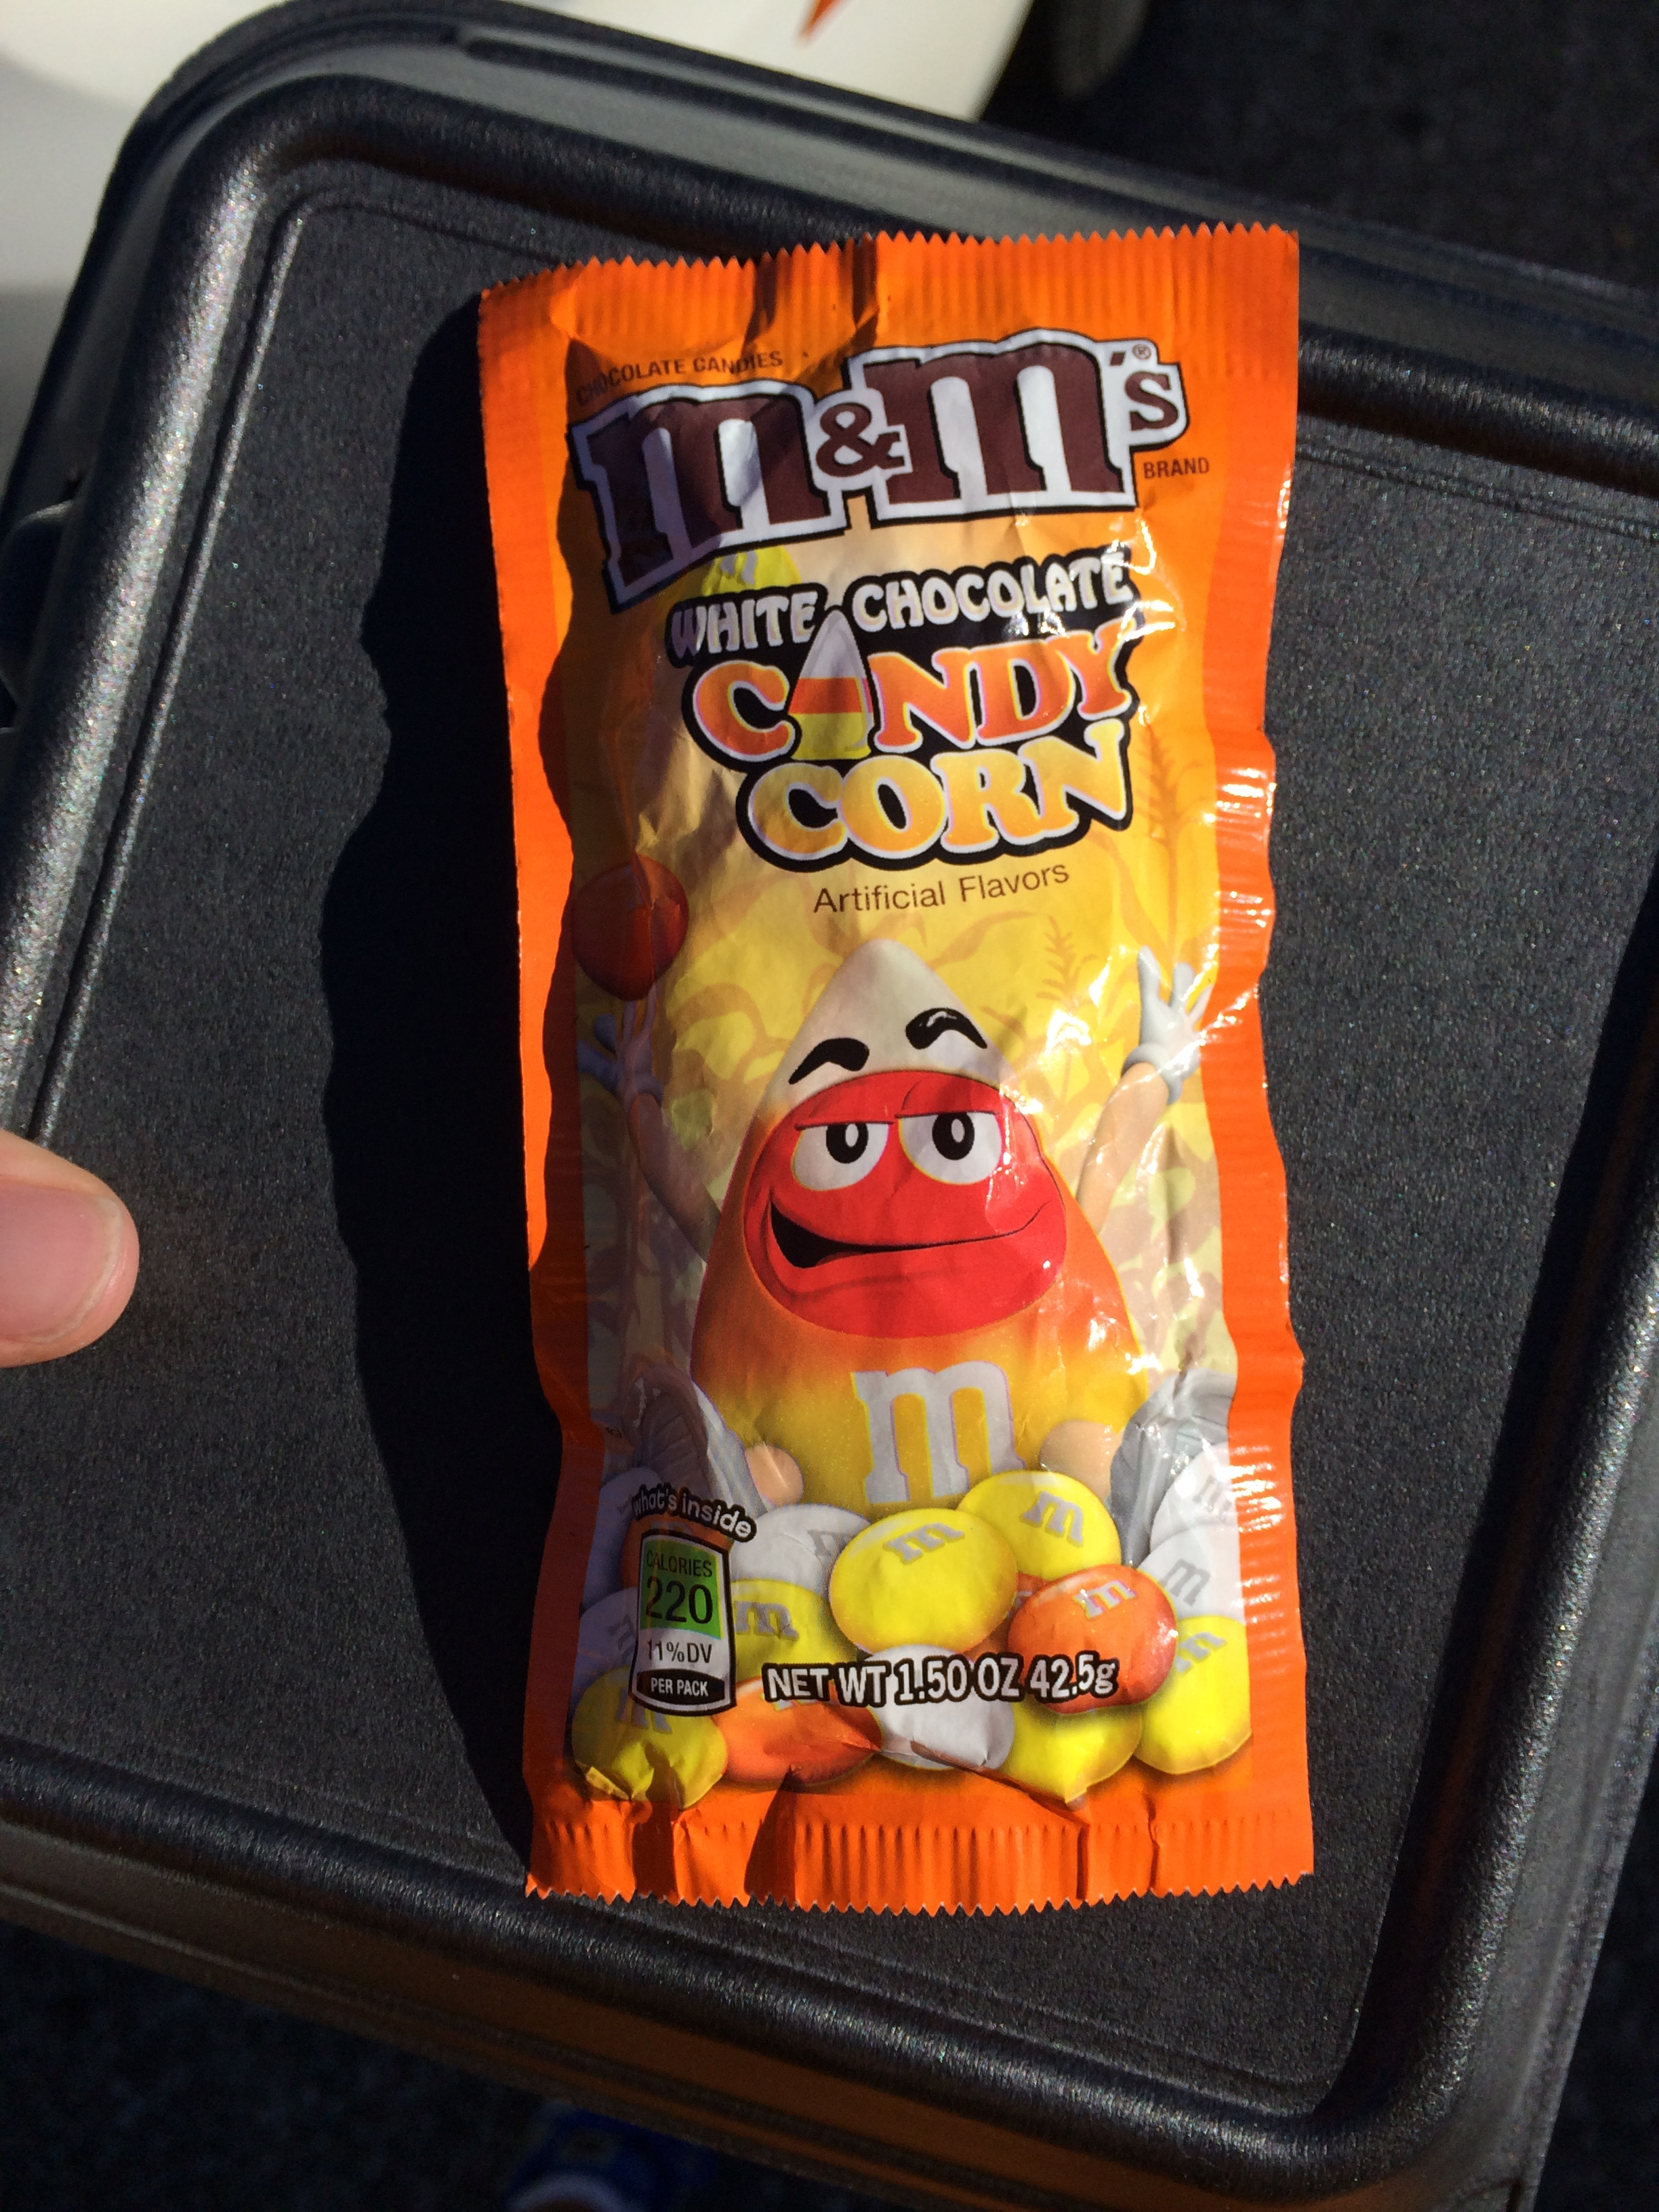 The package of Candy Corn M&M's that I purchased.